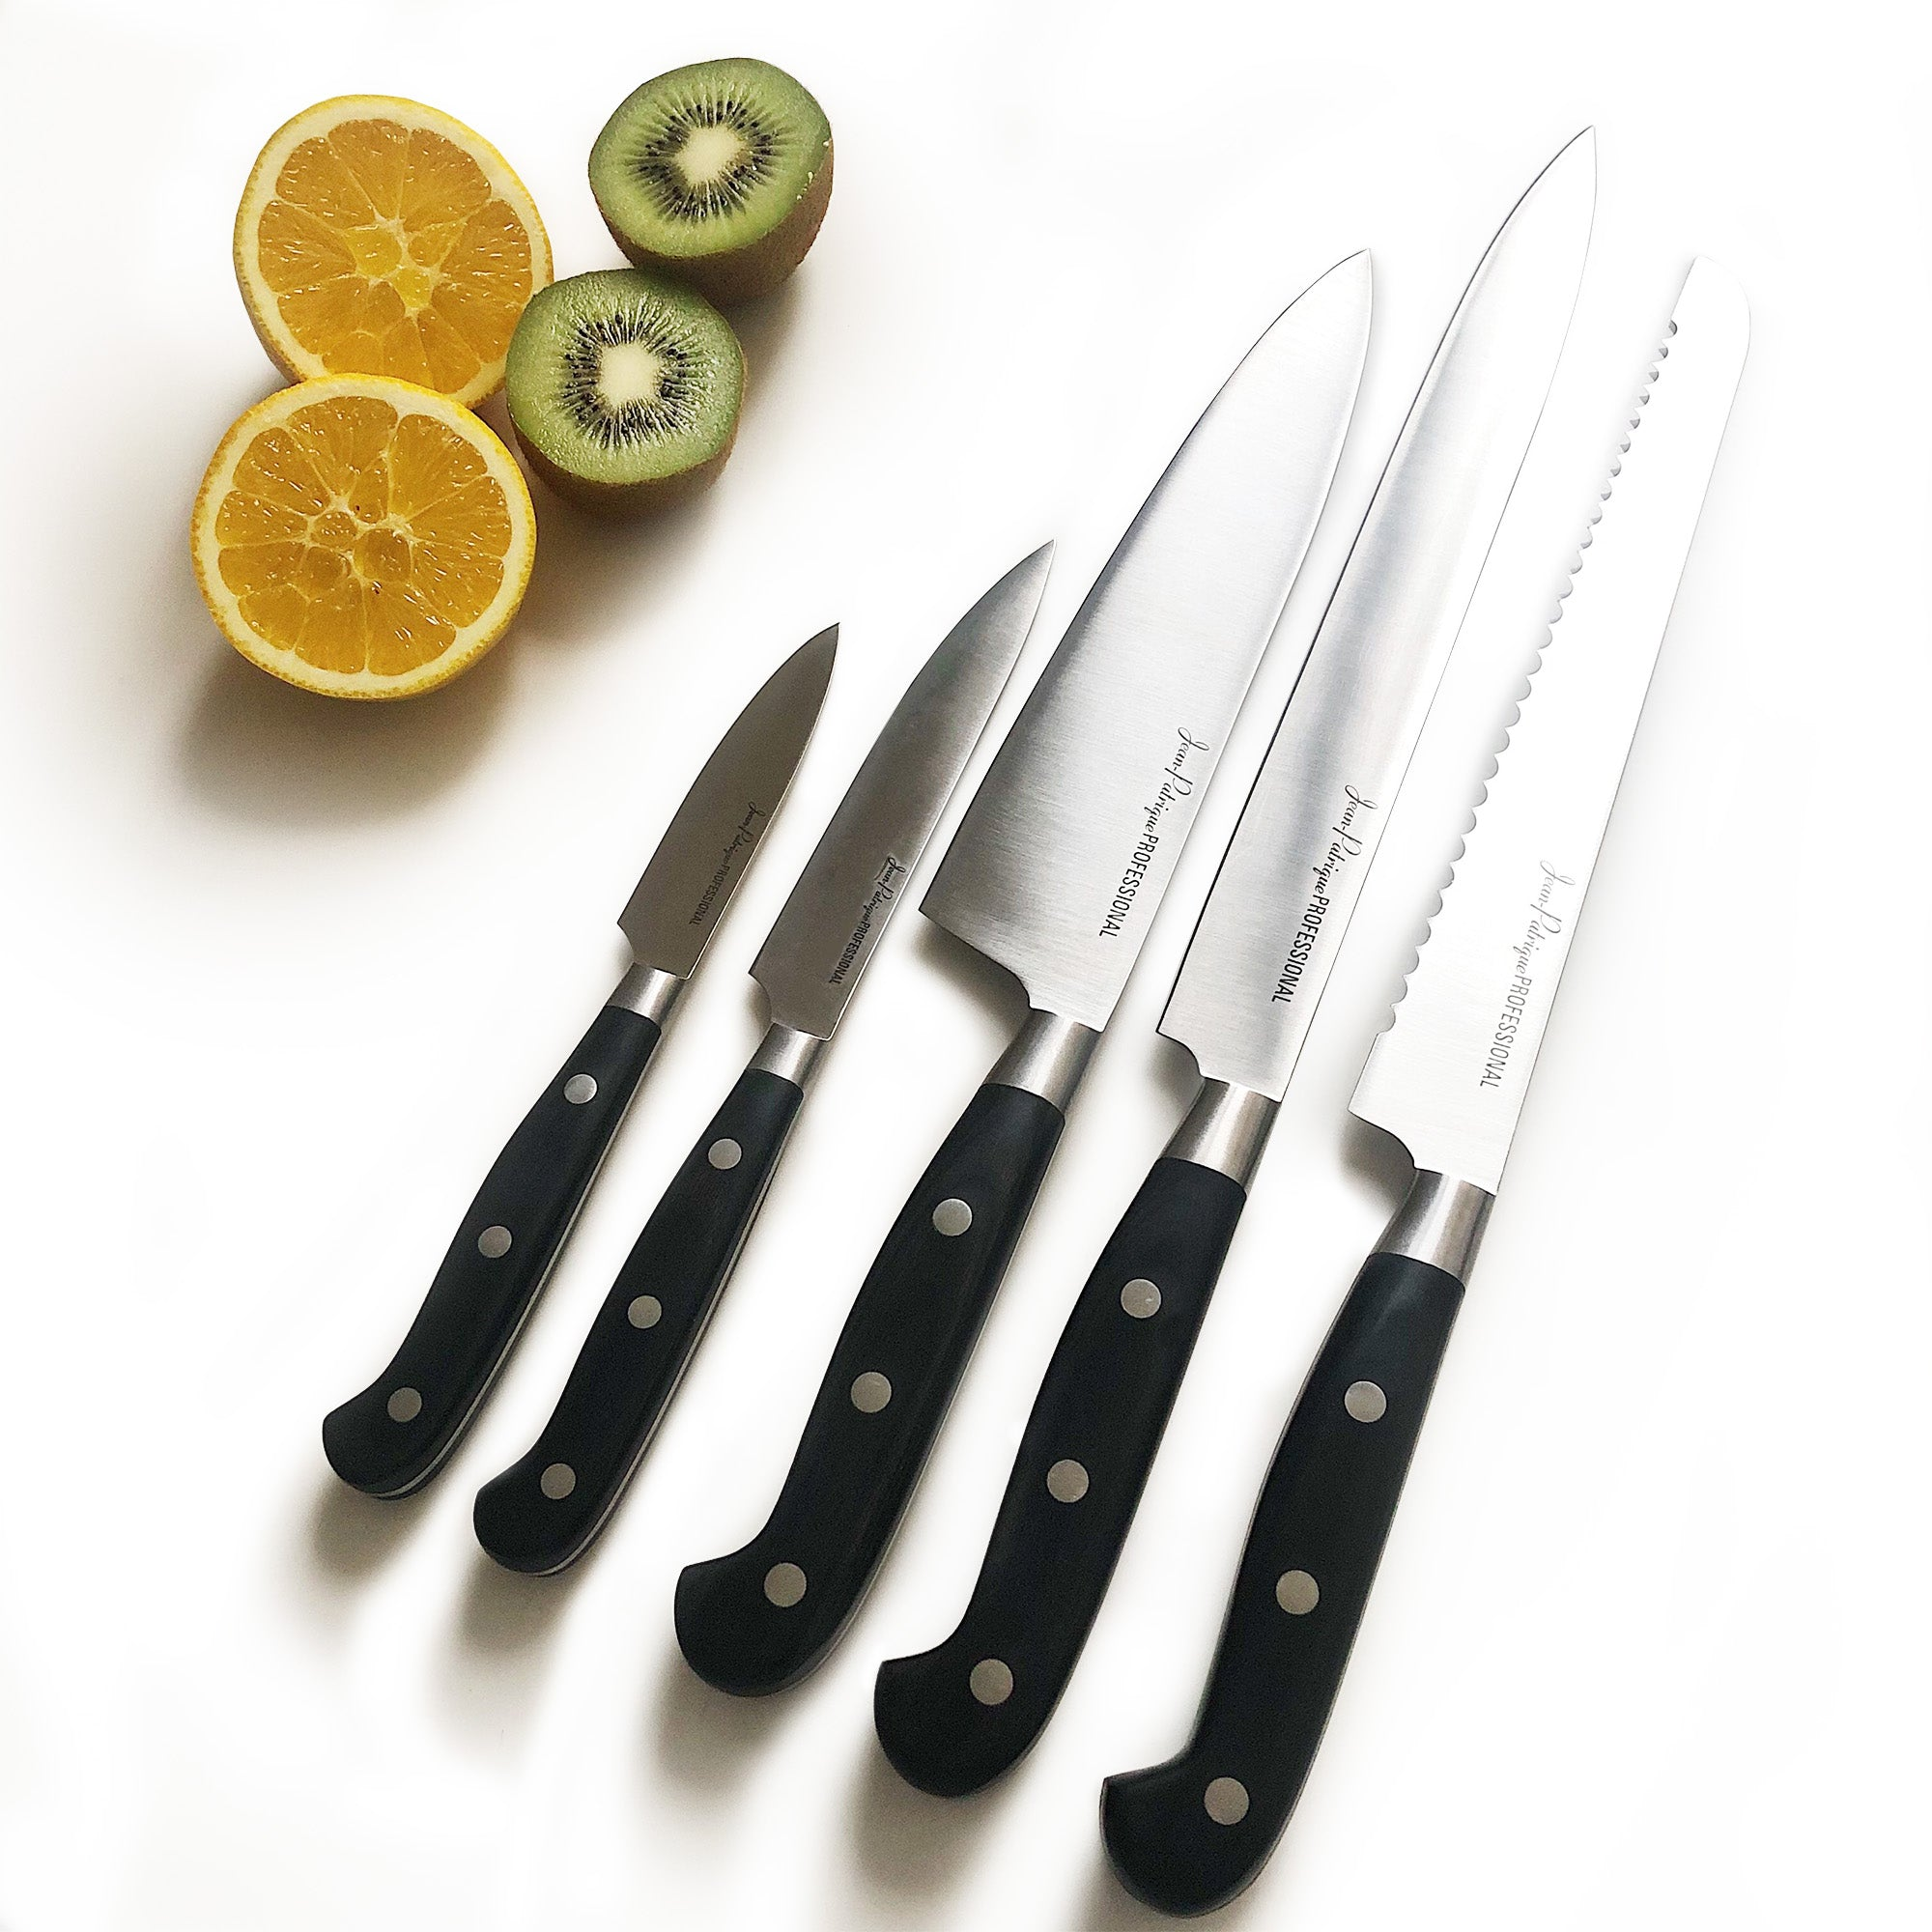 5-Piece Black Handled Knife Set